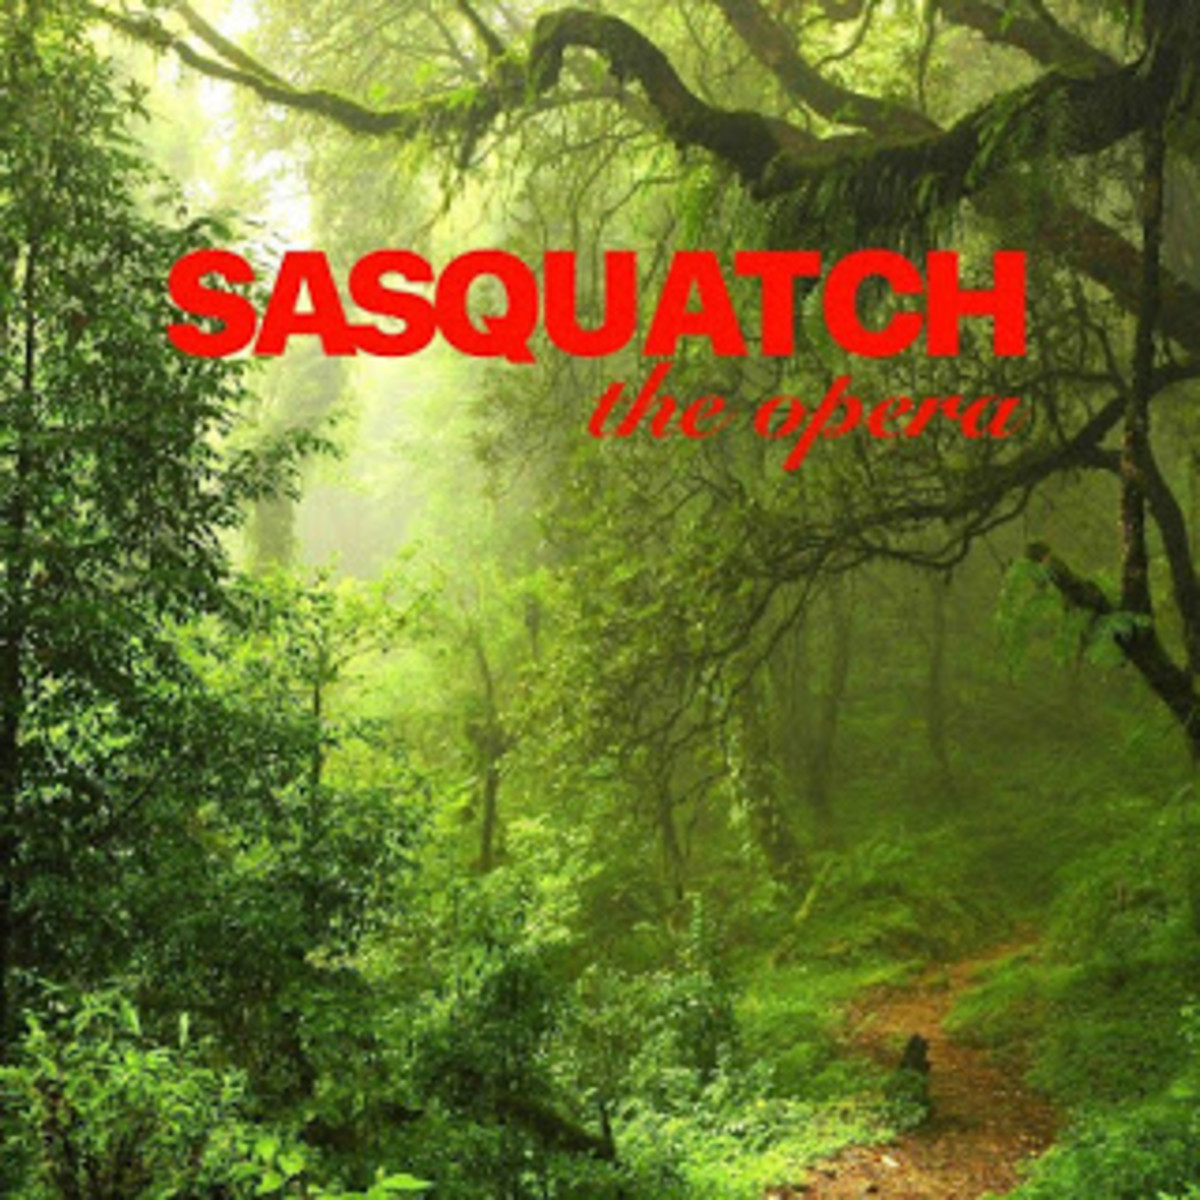 Promo flyer for Sasquatch: The Opera